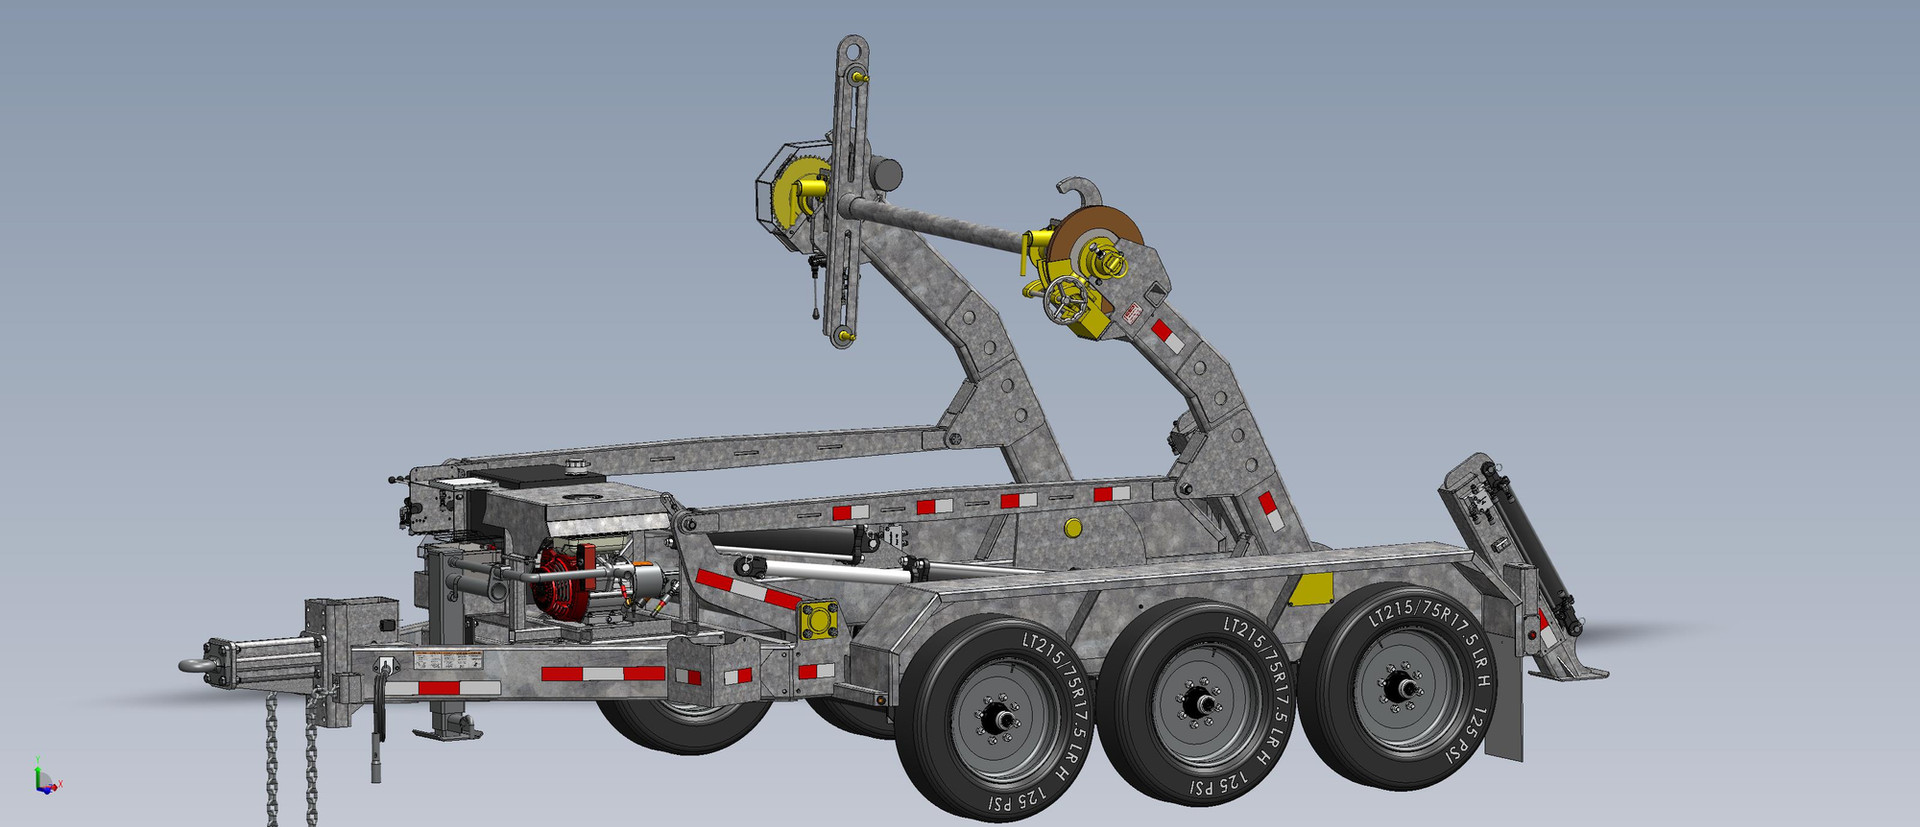 New for 2021. Knuckled Down Lift Arm for Low Center of Gravity 20K Capacity Pinless Reel Trailer. ALL ENGINE COVERS  STANDARD.